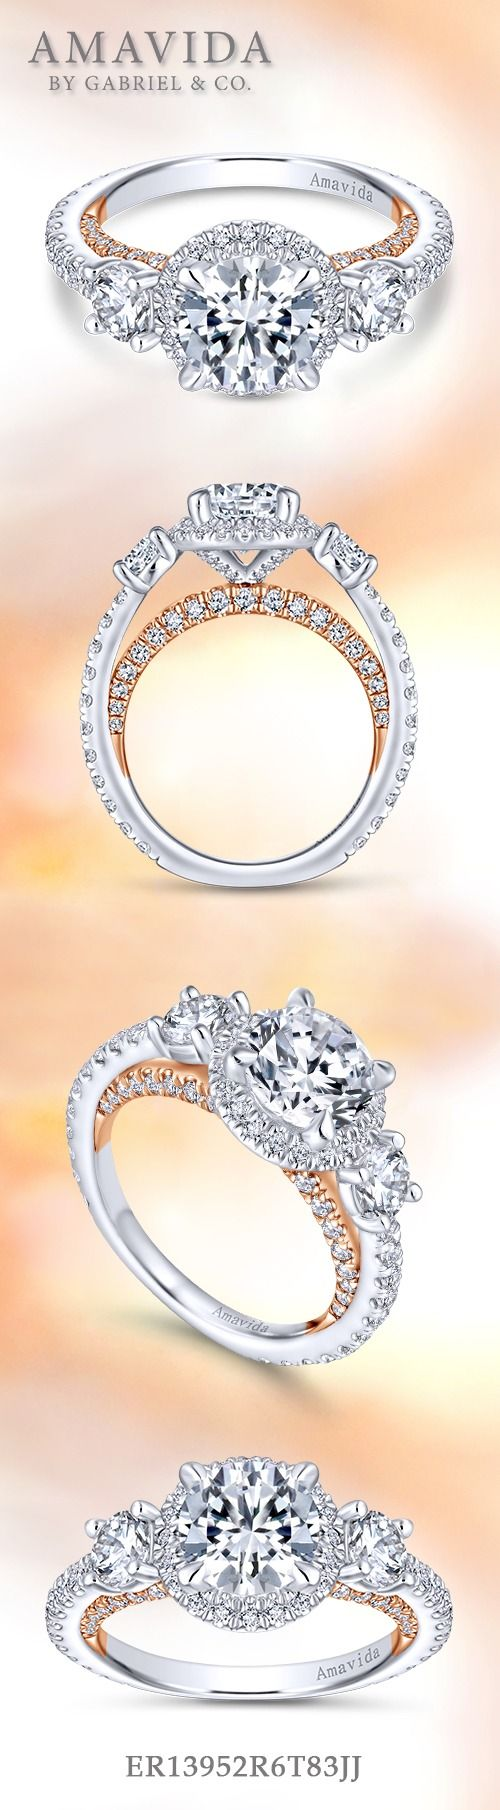 Gabriel & Co.-Voted #1 Most Preferred Fine Jewelry and Bridal Brand. 18k White / Rose Gold Round 3 Stones Halo Engagement Ring